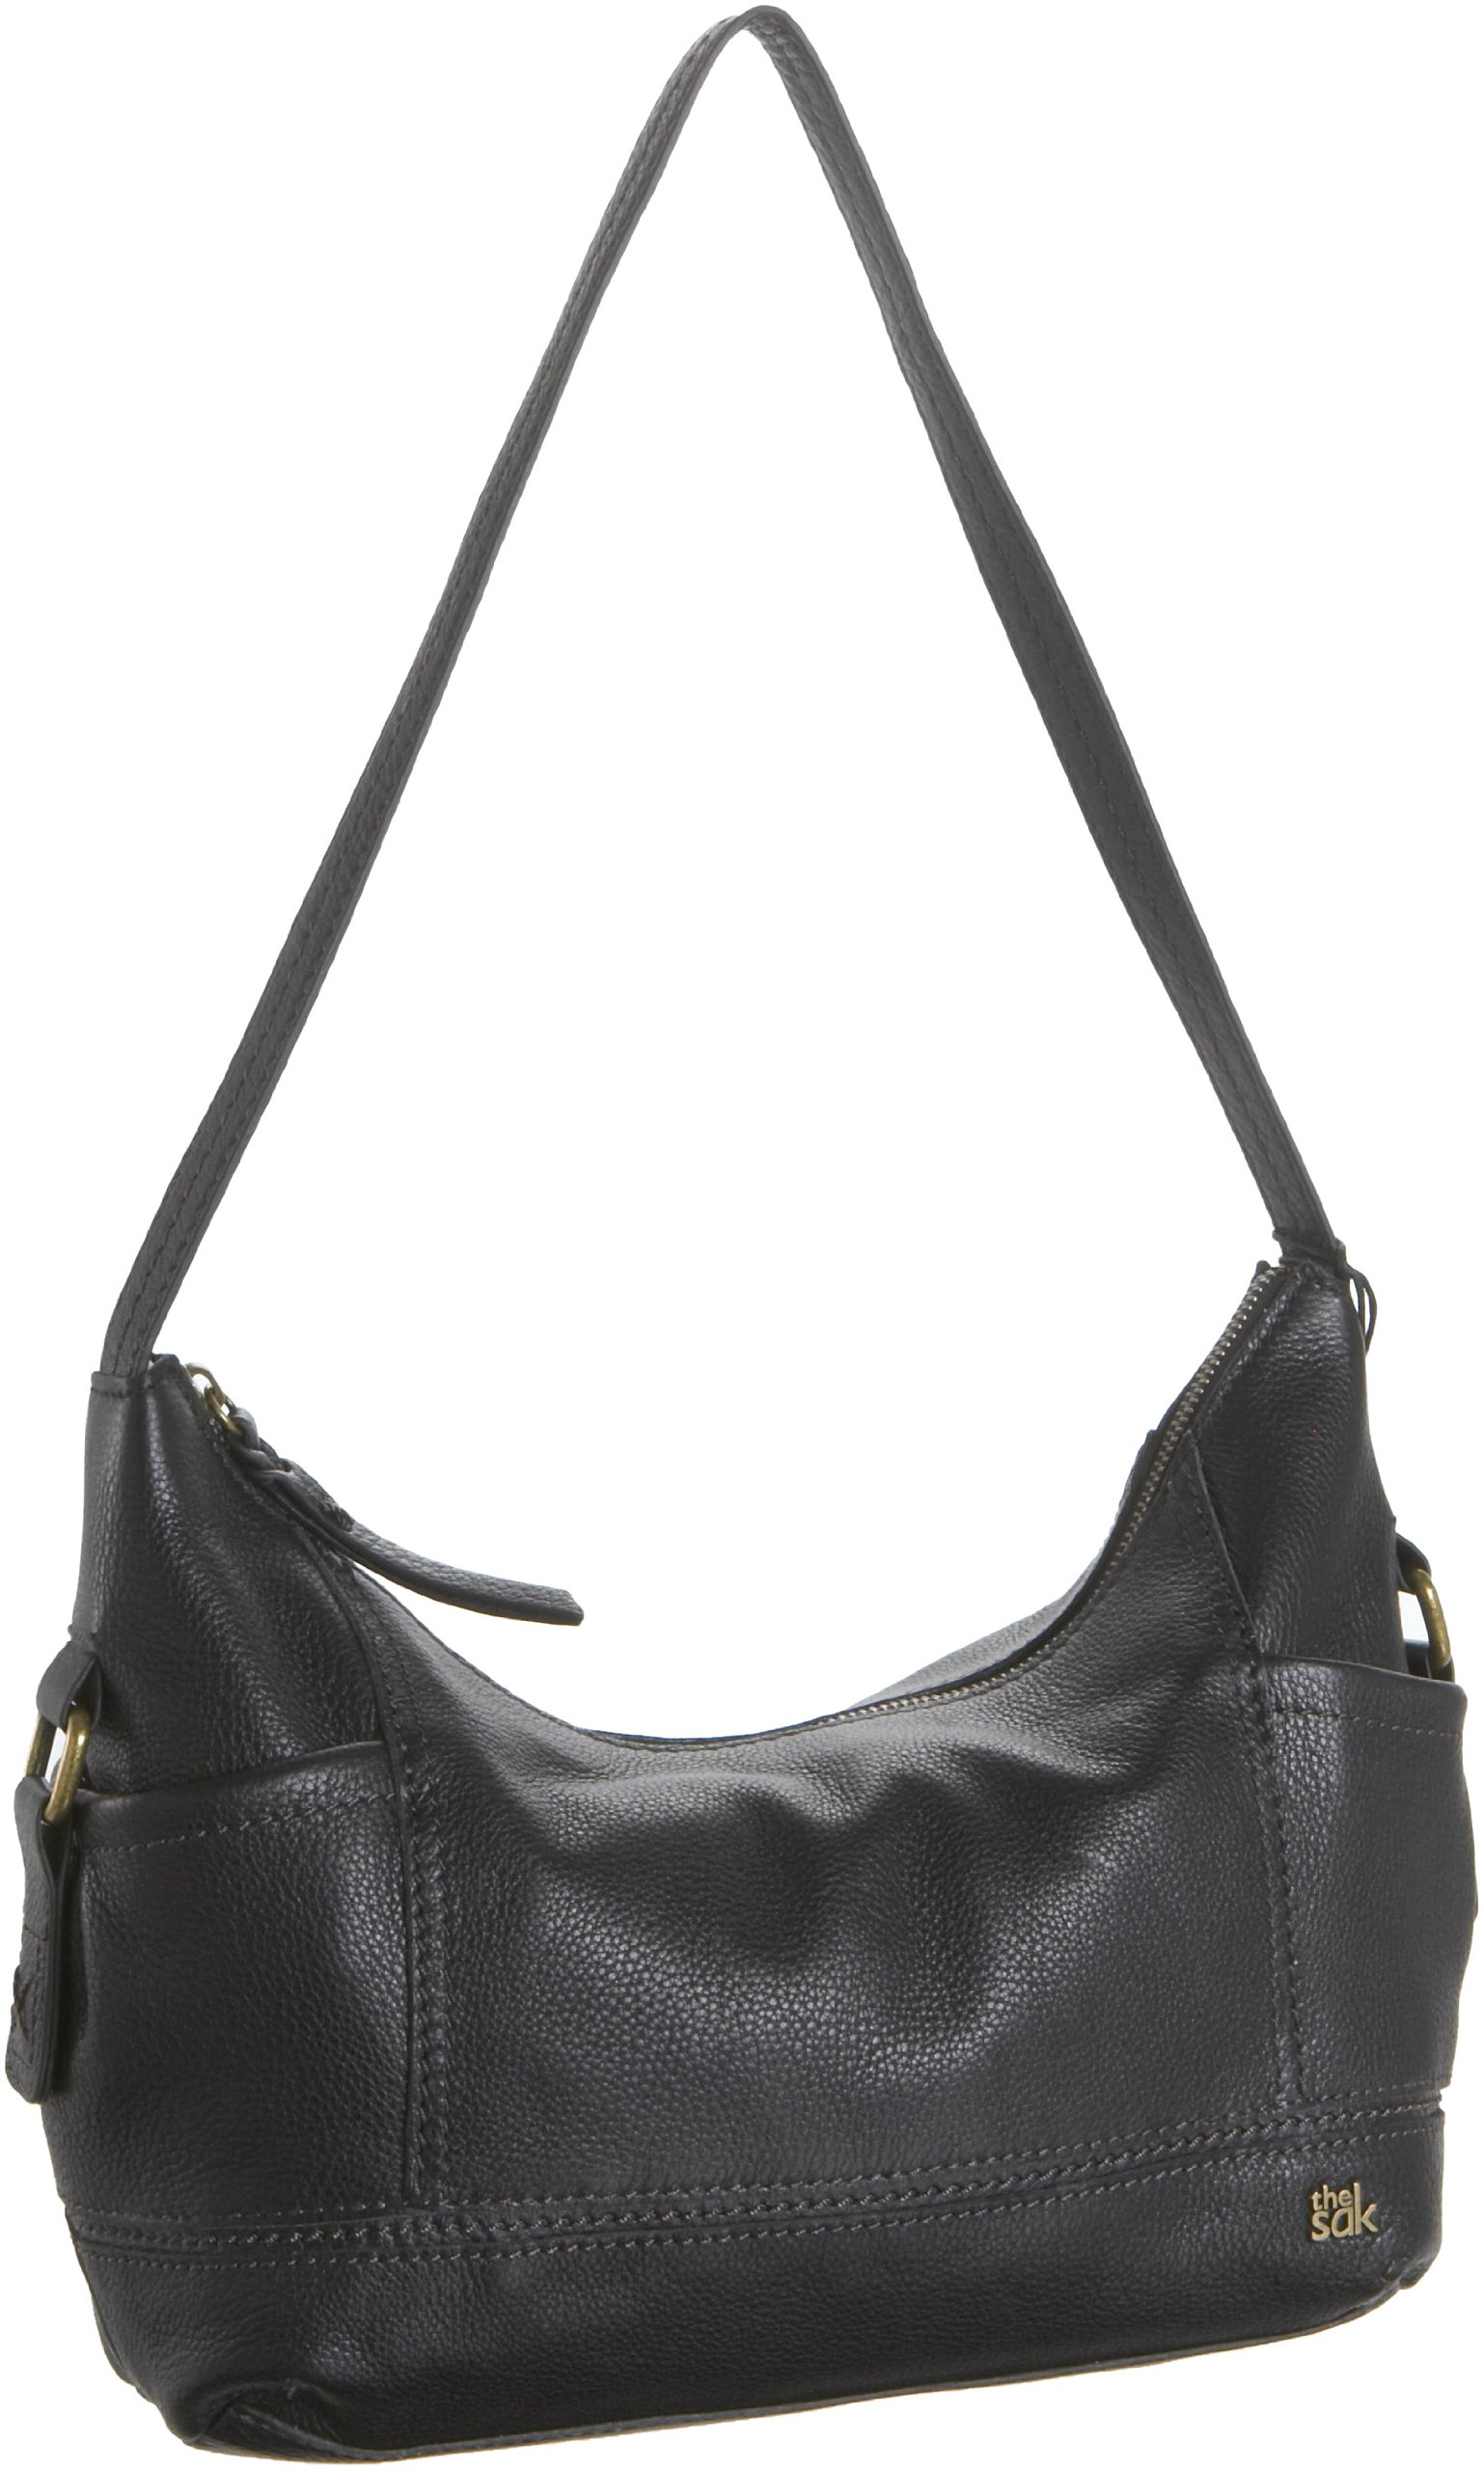 The Sak Kendra Hobo Shoulder Bag,Black,One Size